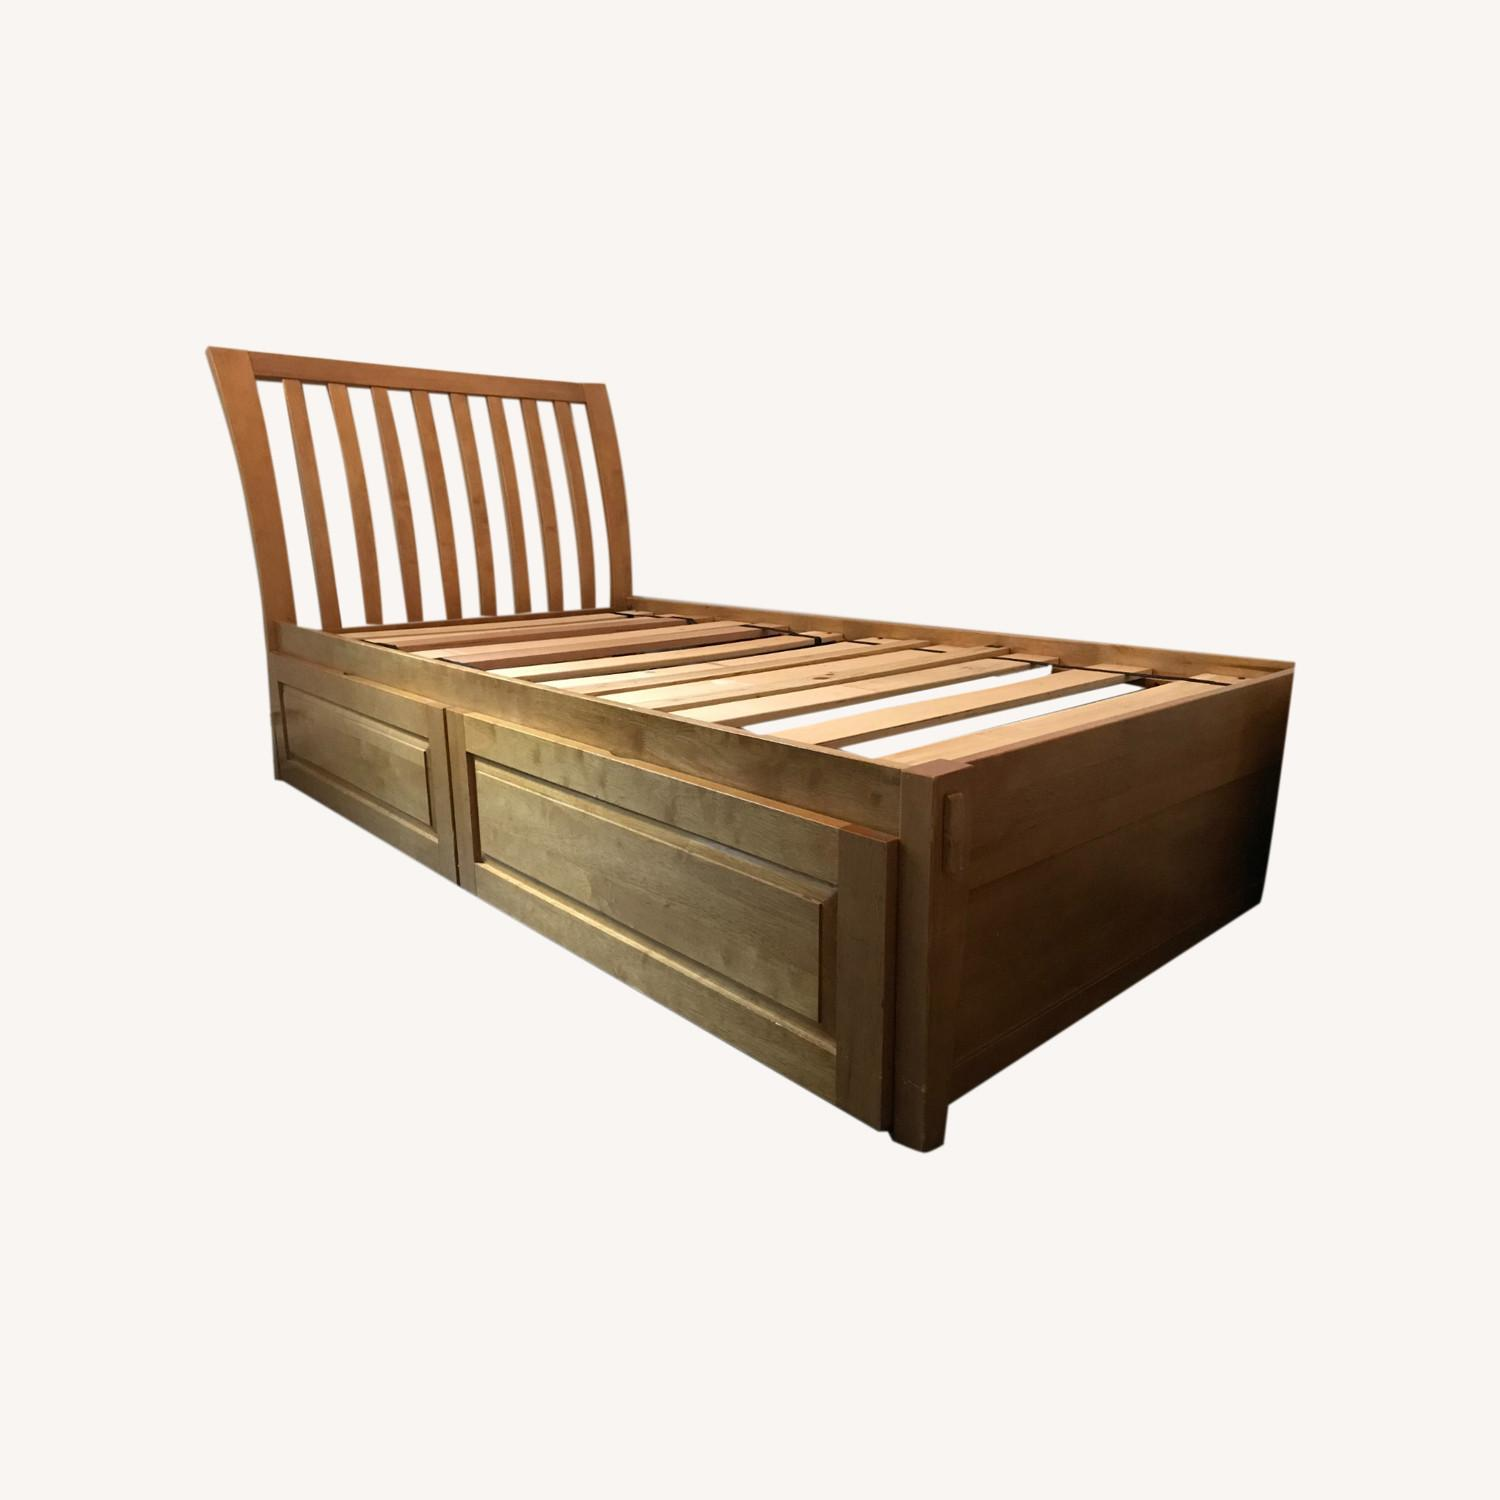 Solid Hardwood Twin Bed with Rolling Drawers - image-0